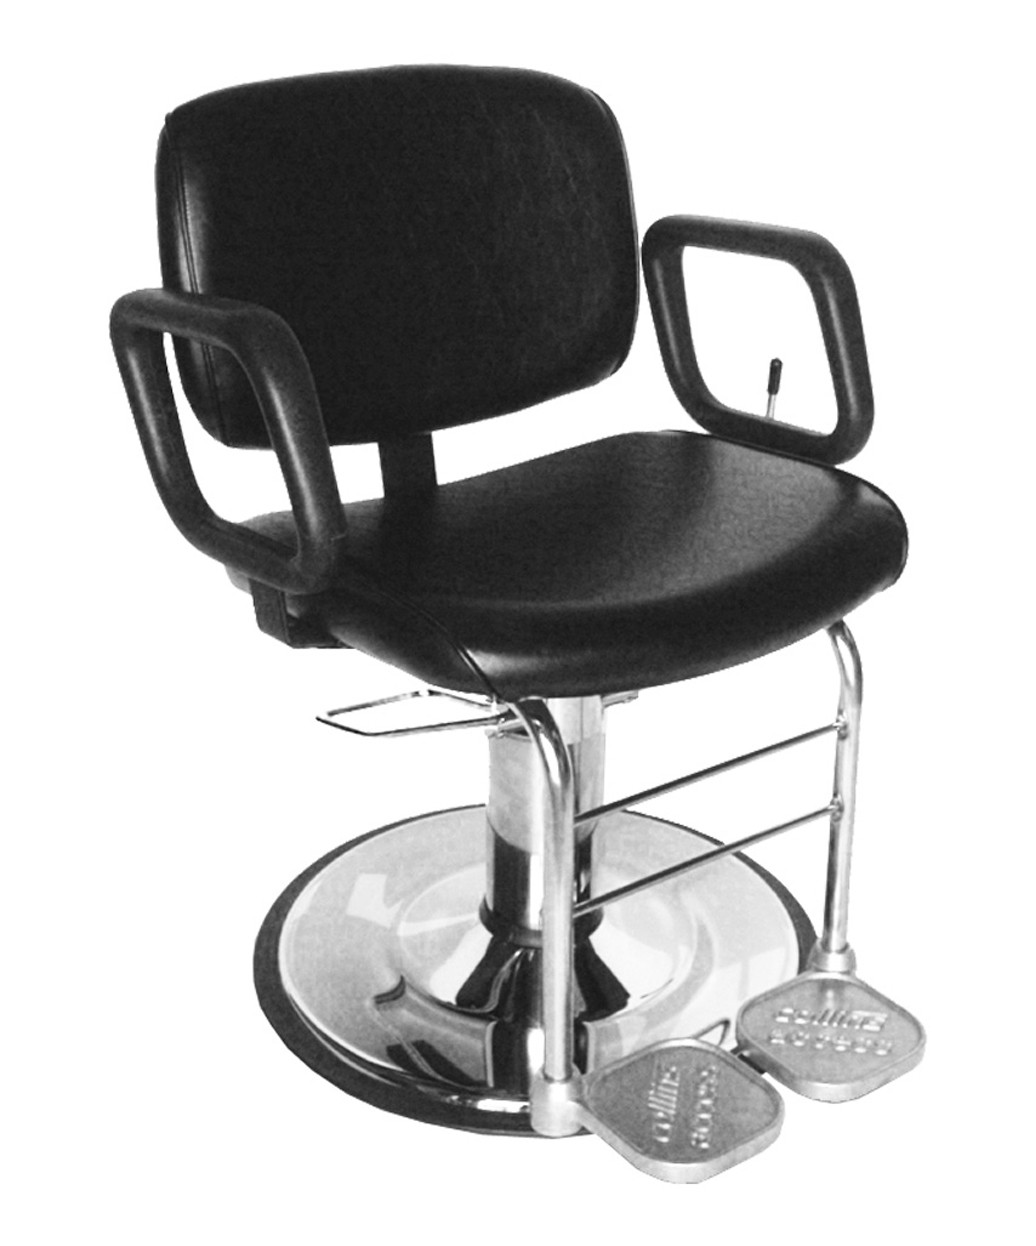 white multi purpose salon chair high stool dimensions collins 7710 all for waxing threading